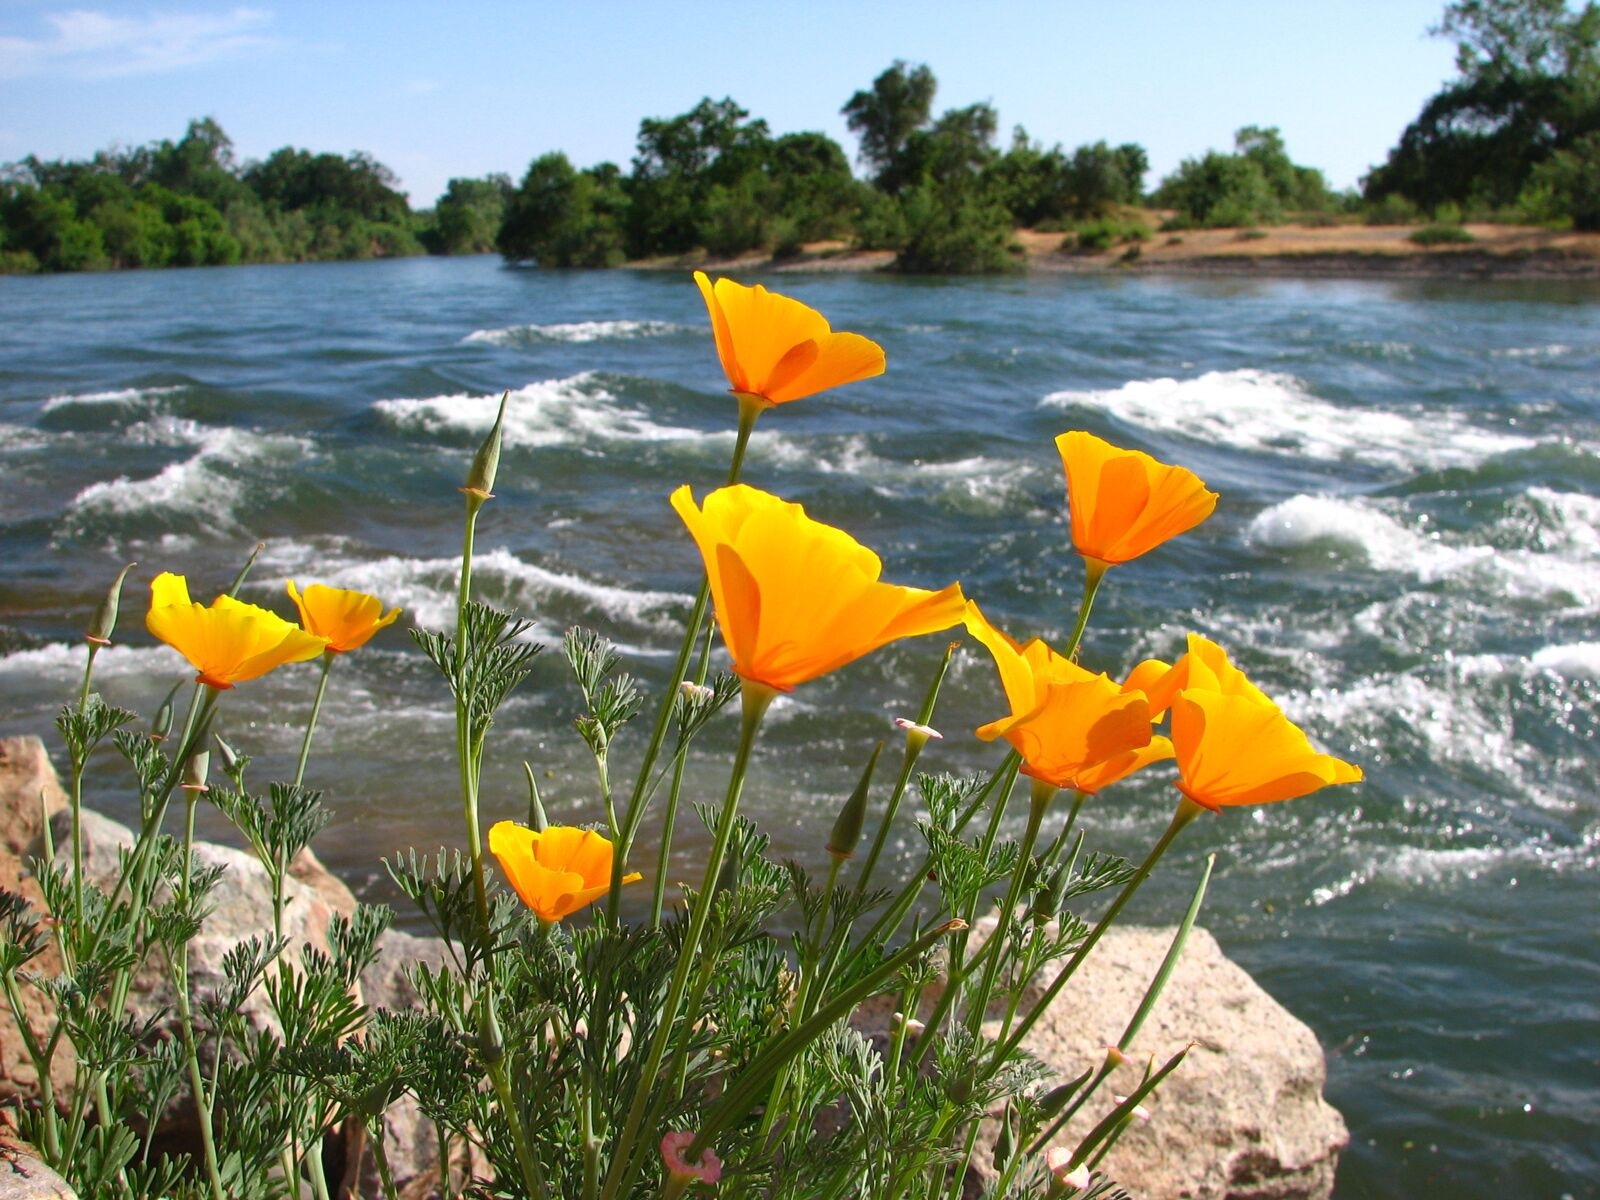 Poppies along the American River